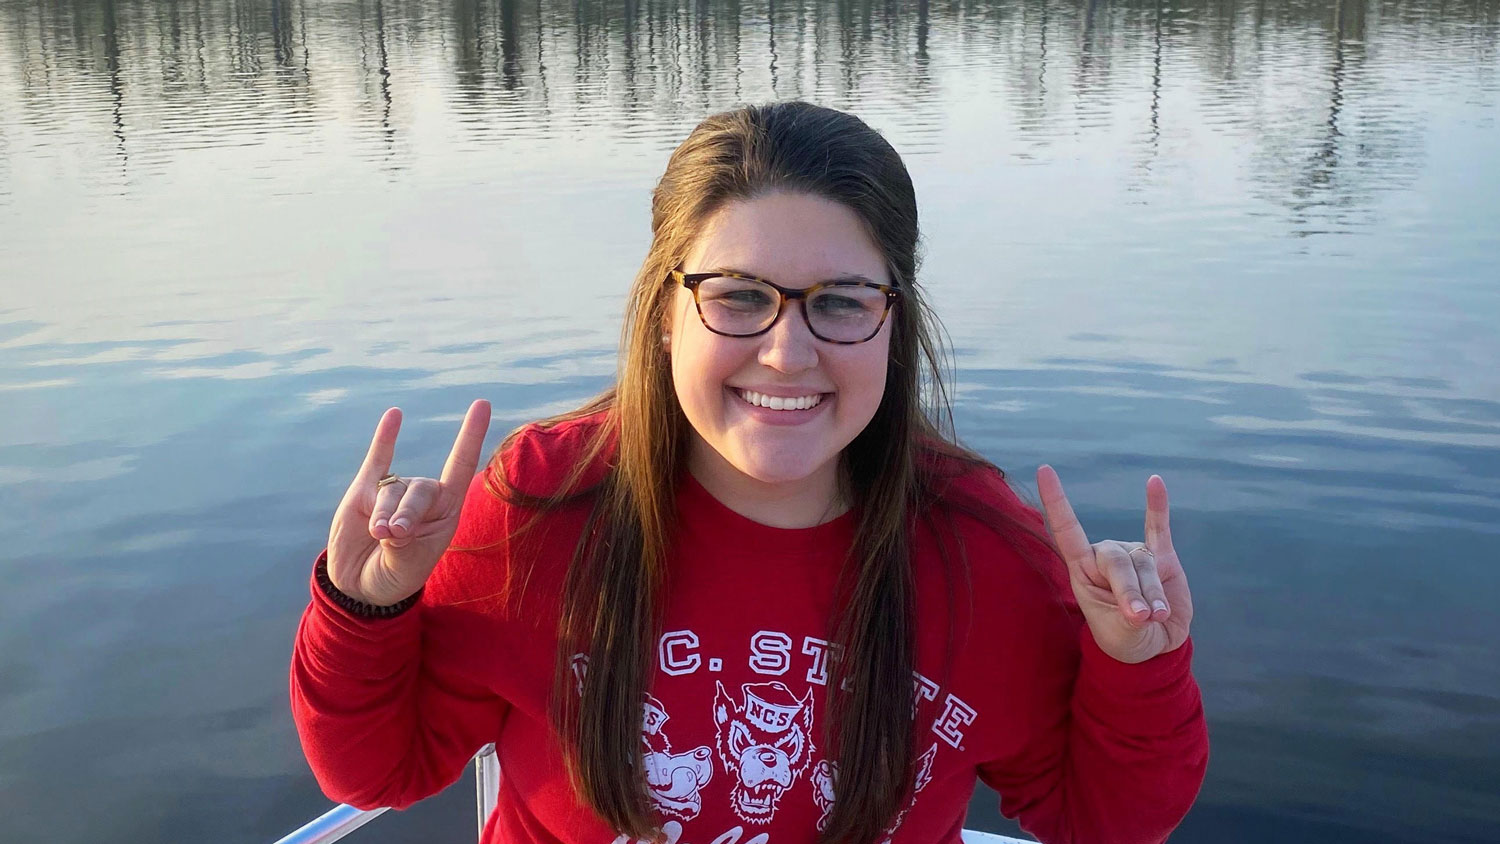 Young woman sitting on a small boat in the middle of water with two wolfpack hands